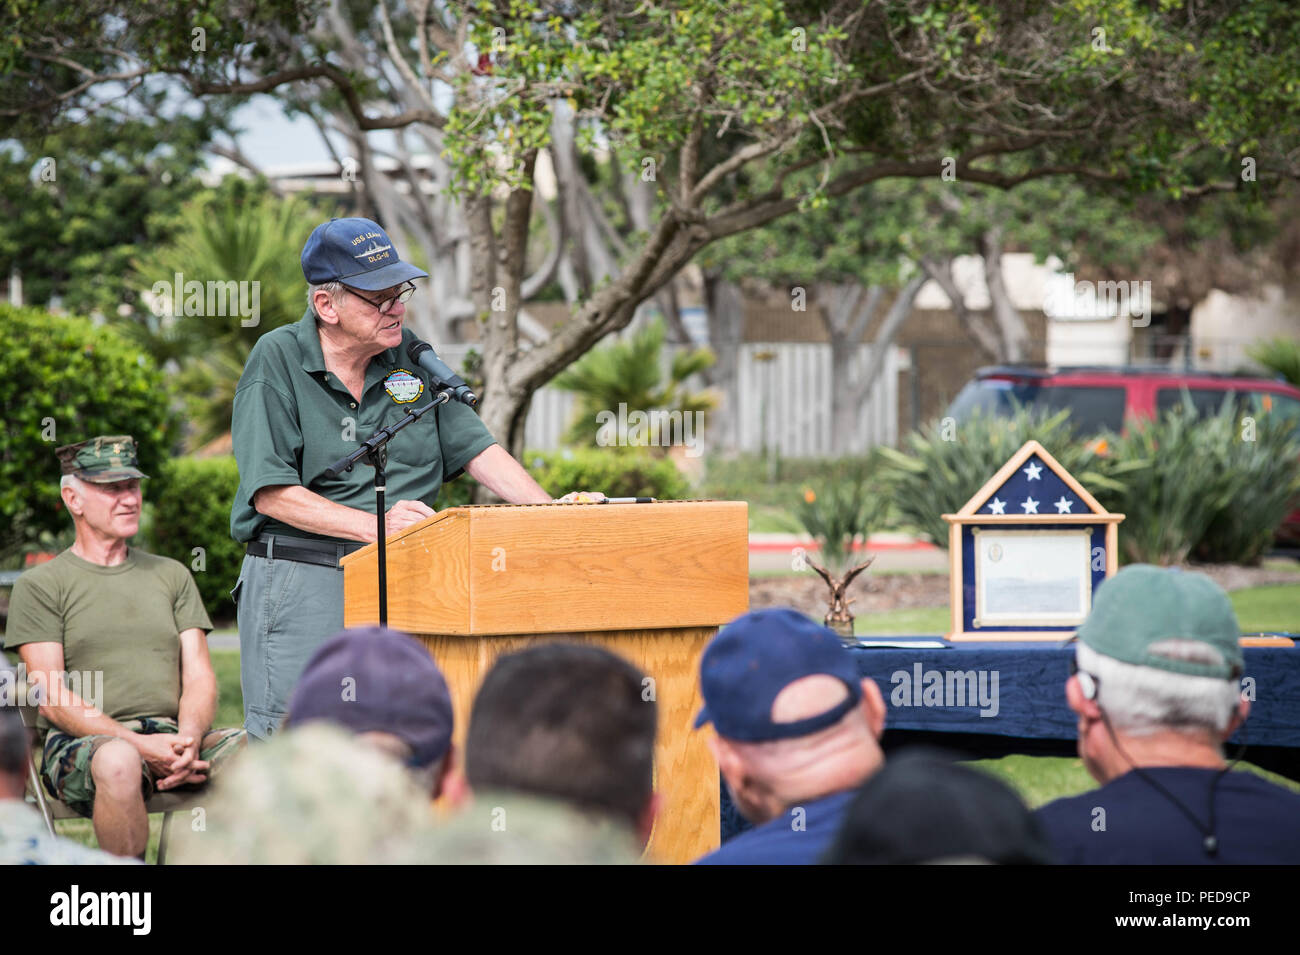 150807-N-NK714-010  150807-N-NK714-010 SAN DIEGO (Aug. 7, 2015) – Vietnam veterans and sailors attached to Coastal Riverine Group 1 (CGR 1) listen to Cmdr. (Ret.) Bob Bolger, Officer in Charge of Patrol Fast Craft 99 (PCF-99) in I Corps, as he speaks about his experiences as an officer in Vietnam. Bolger's unit was in the northern tactical zone of South Vietnam from 1966 -1967 and Bolger is now active in several veteran groups in the greater San Diego area. (U.S. Navy Photo by MC2 Nolan Kahn/Released) - Stock Image